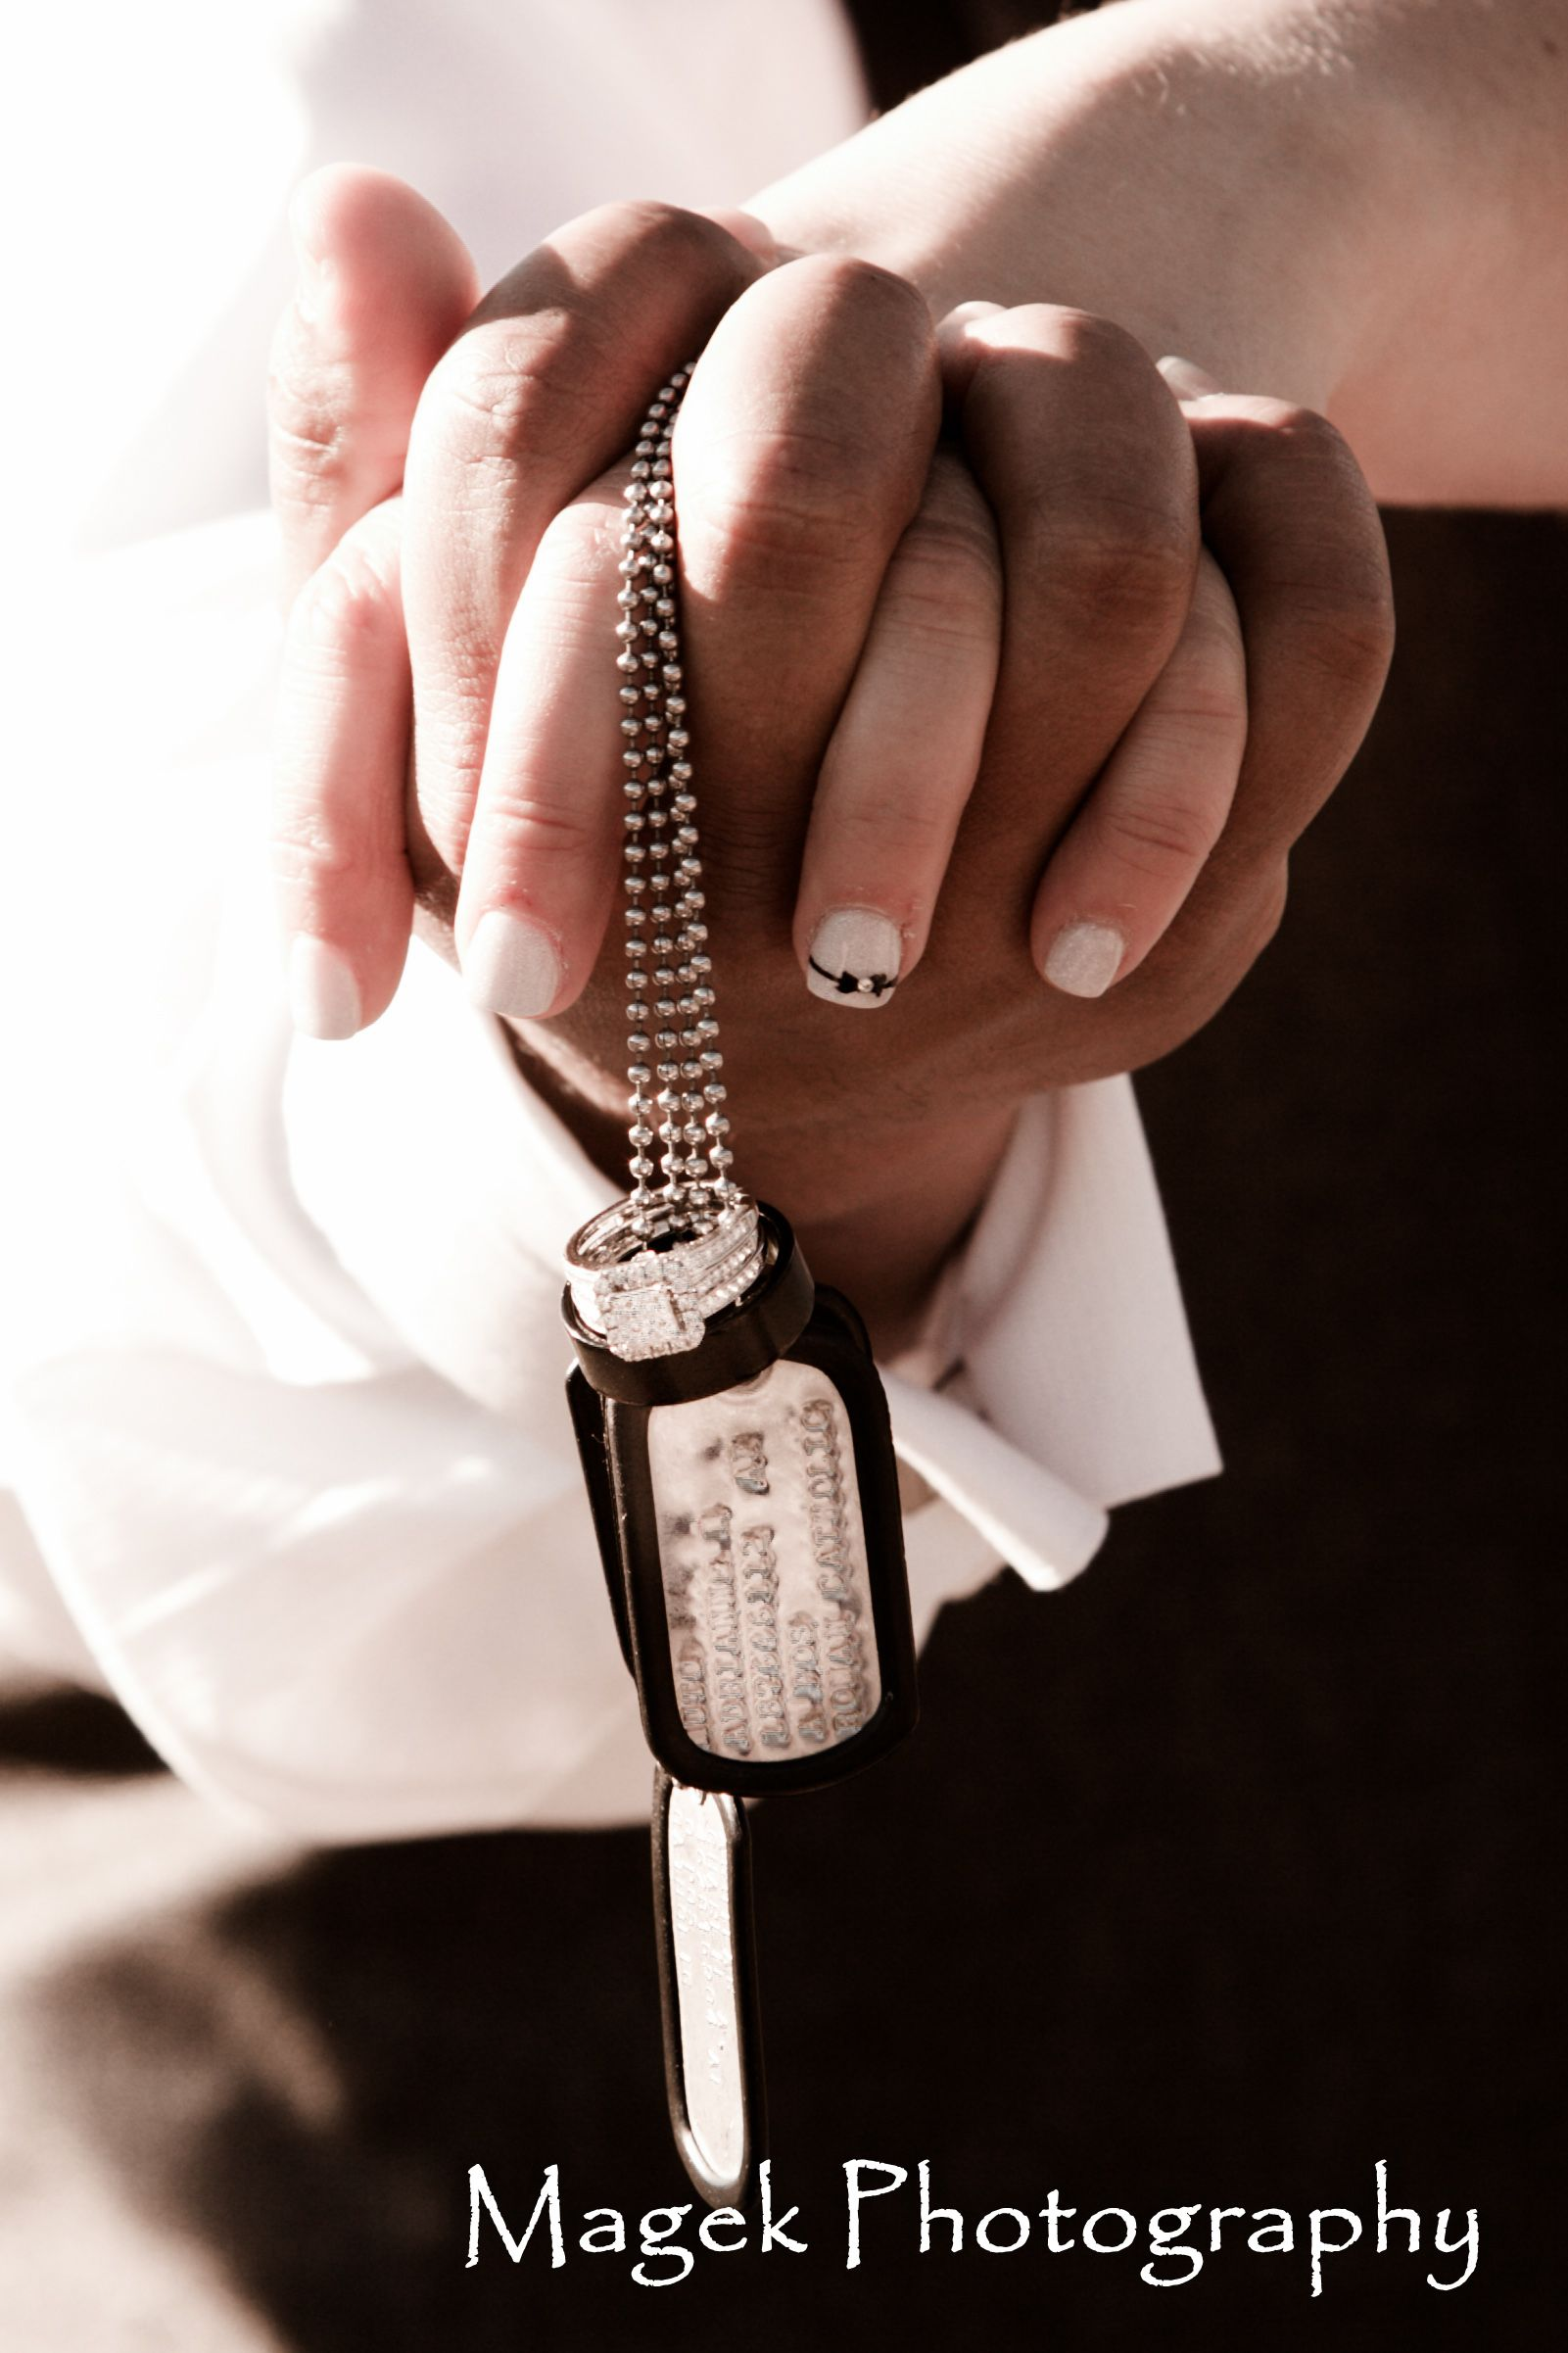 military wedding rings Military tags and wedding rings Magek Photography www magekphoto com Click to see